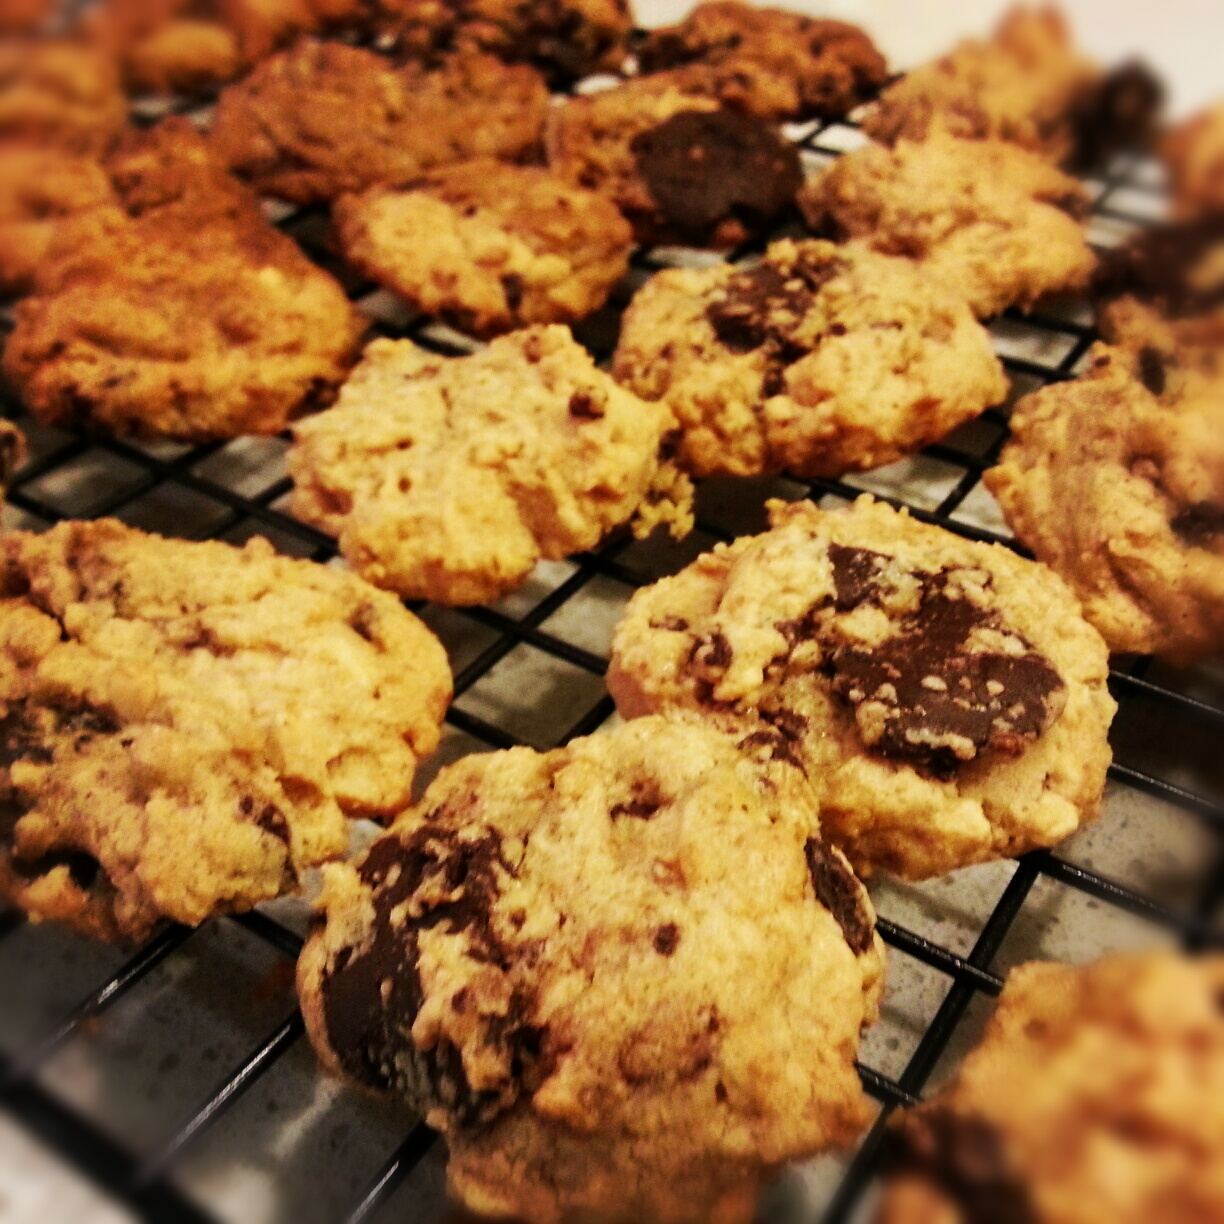 Peanut Butter Chocolate flourless Cookies